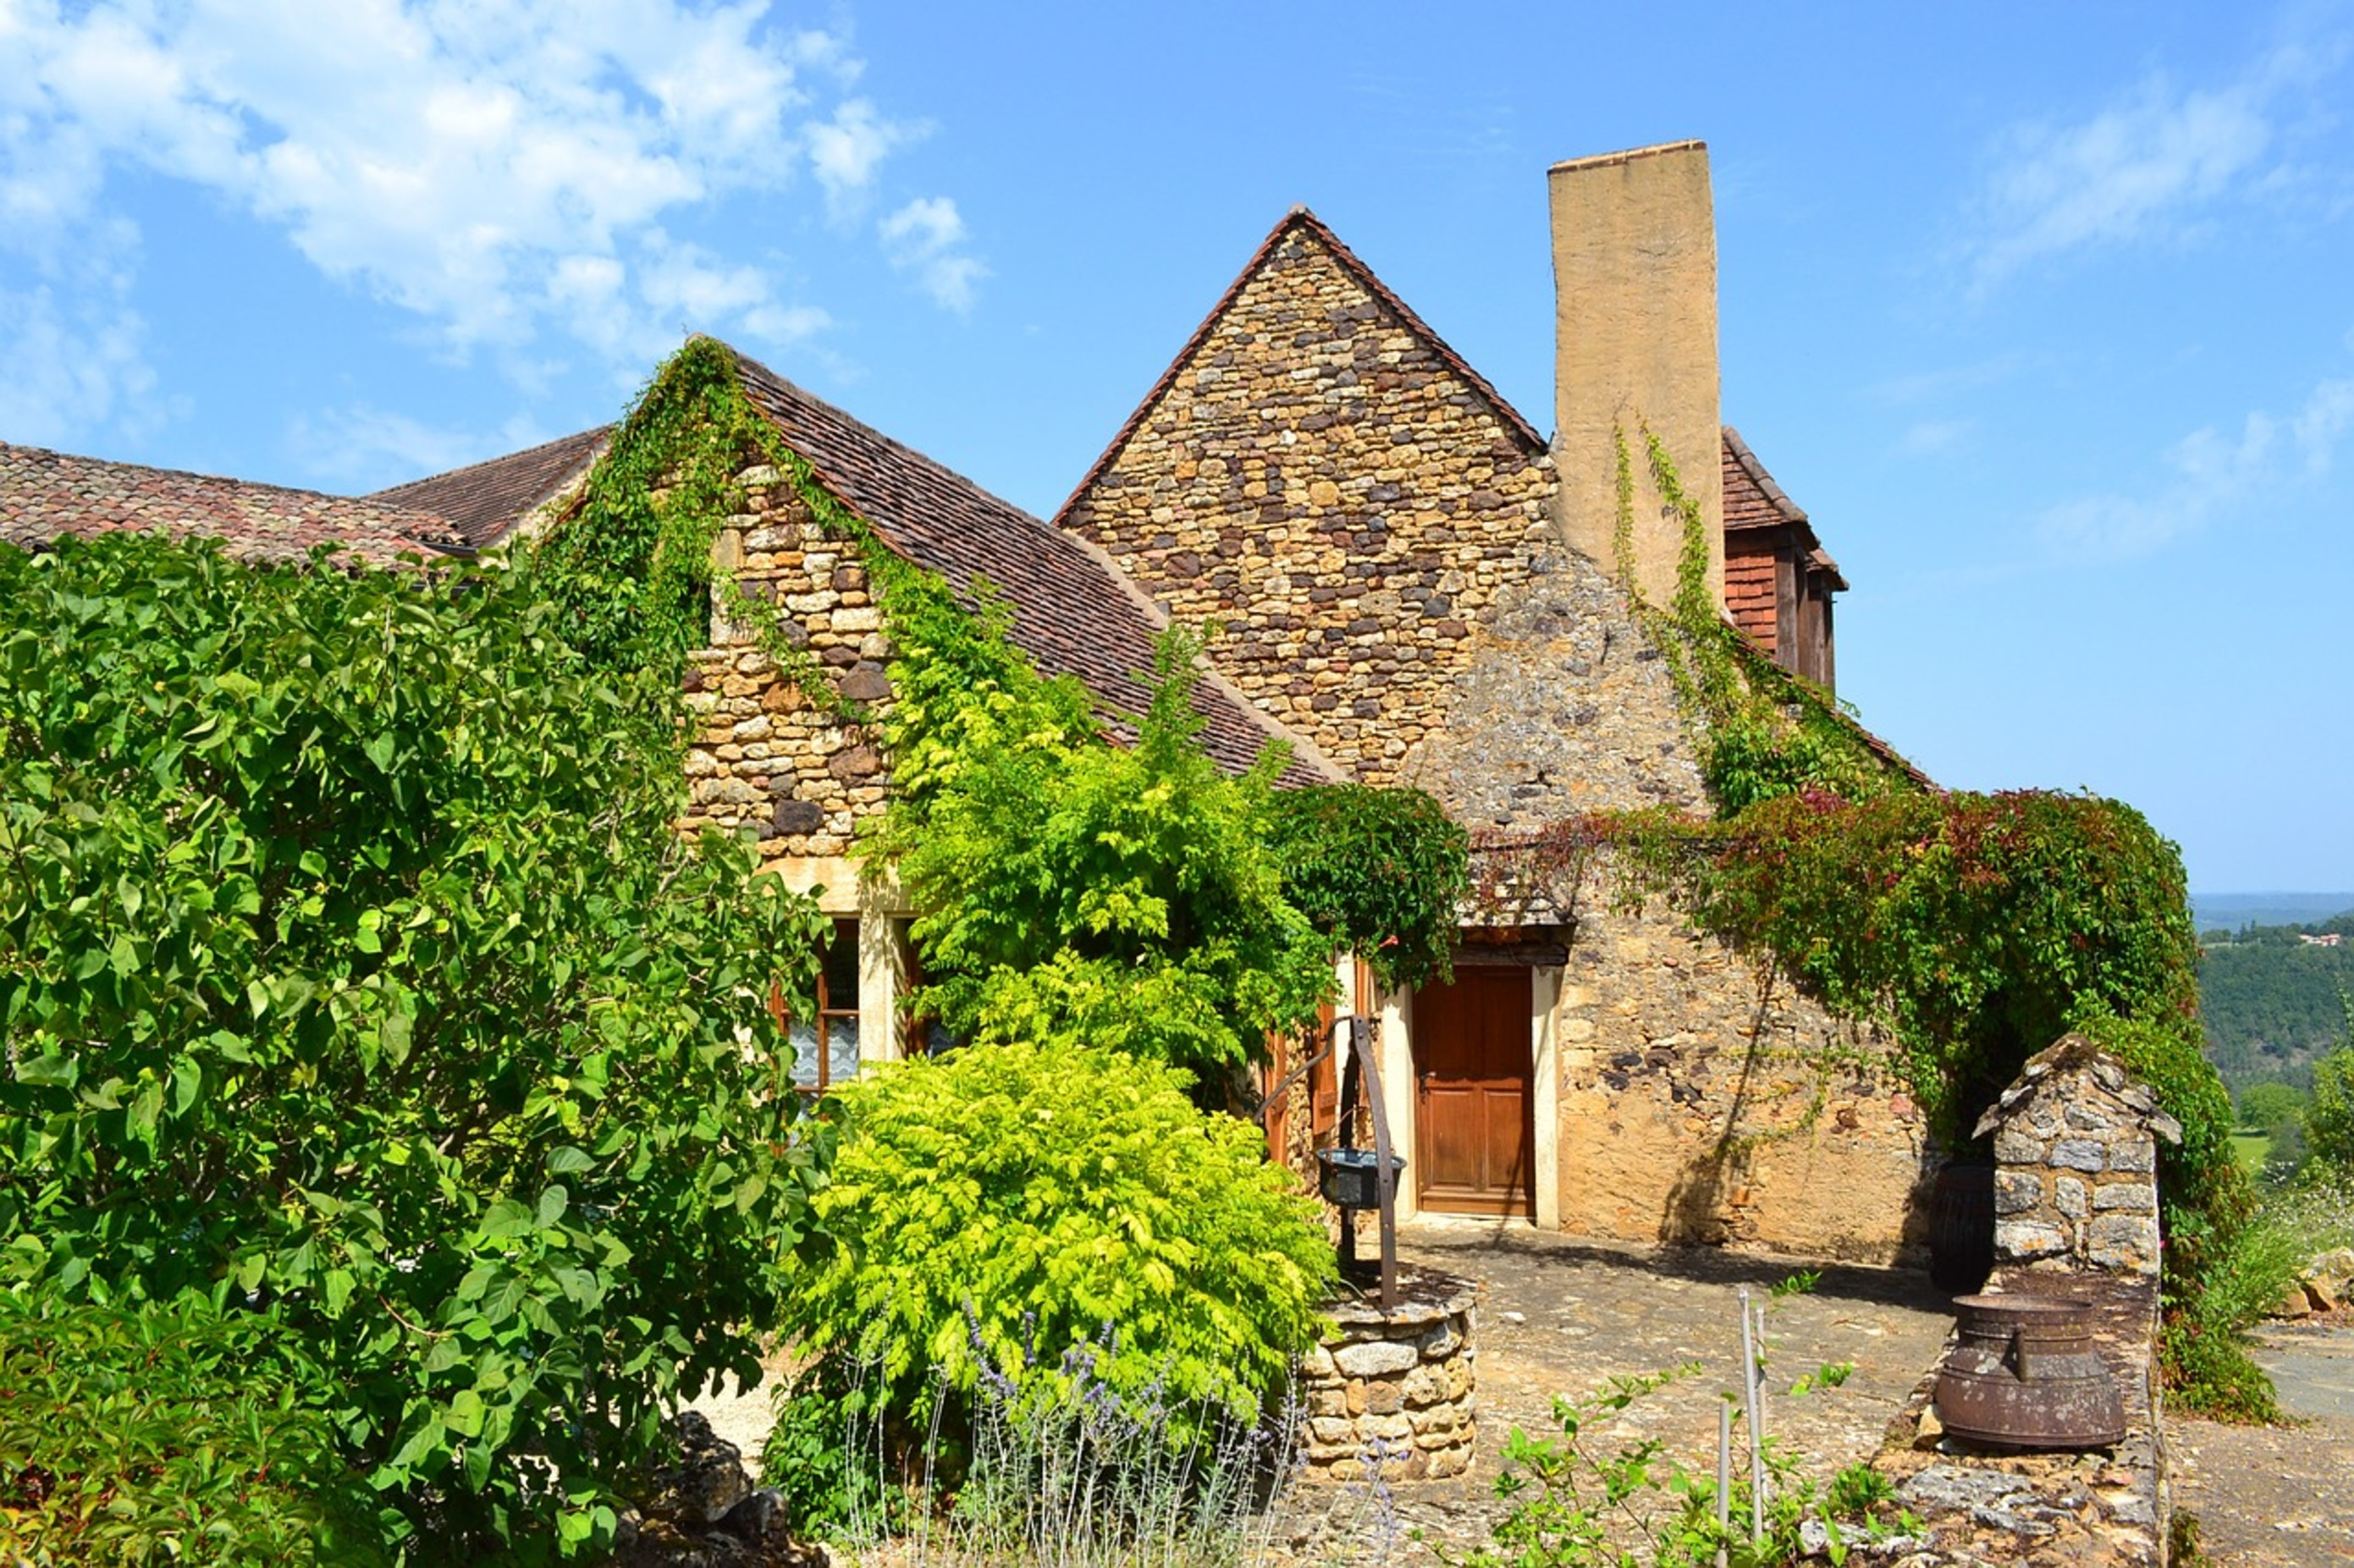 A medieval house in the Dordogne region of France